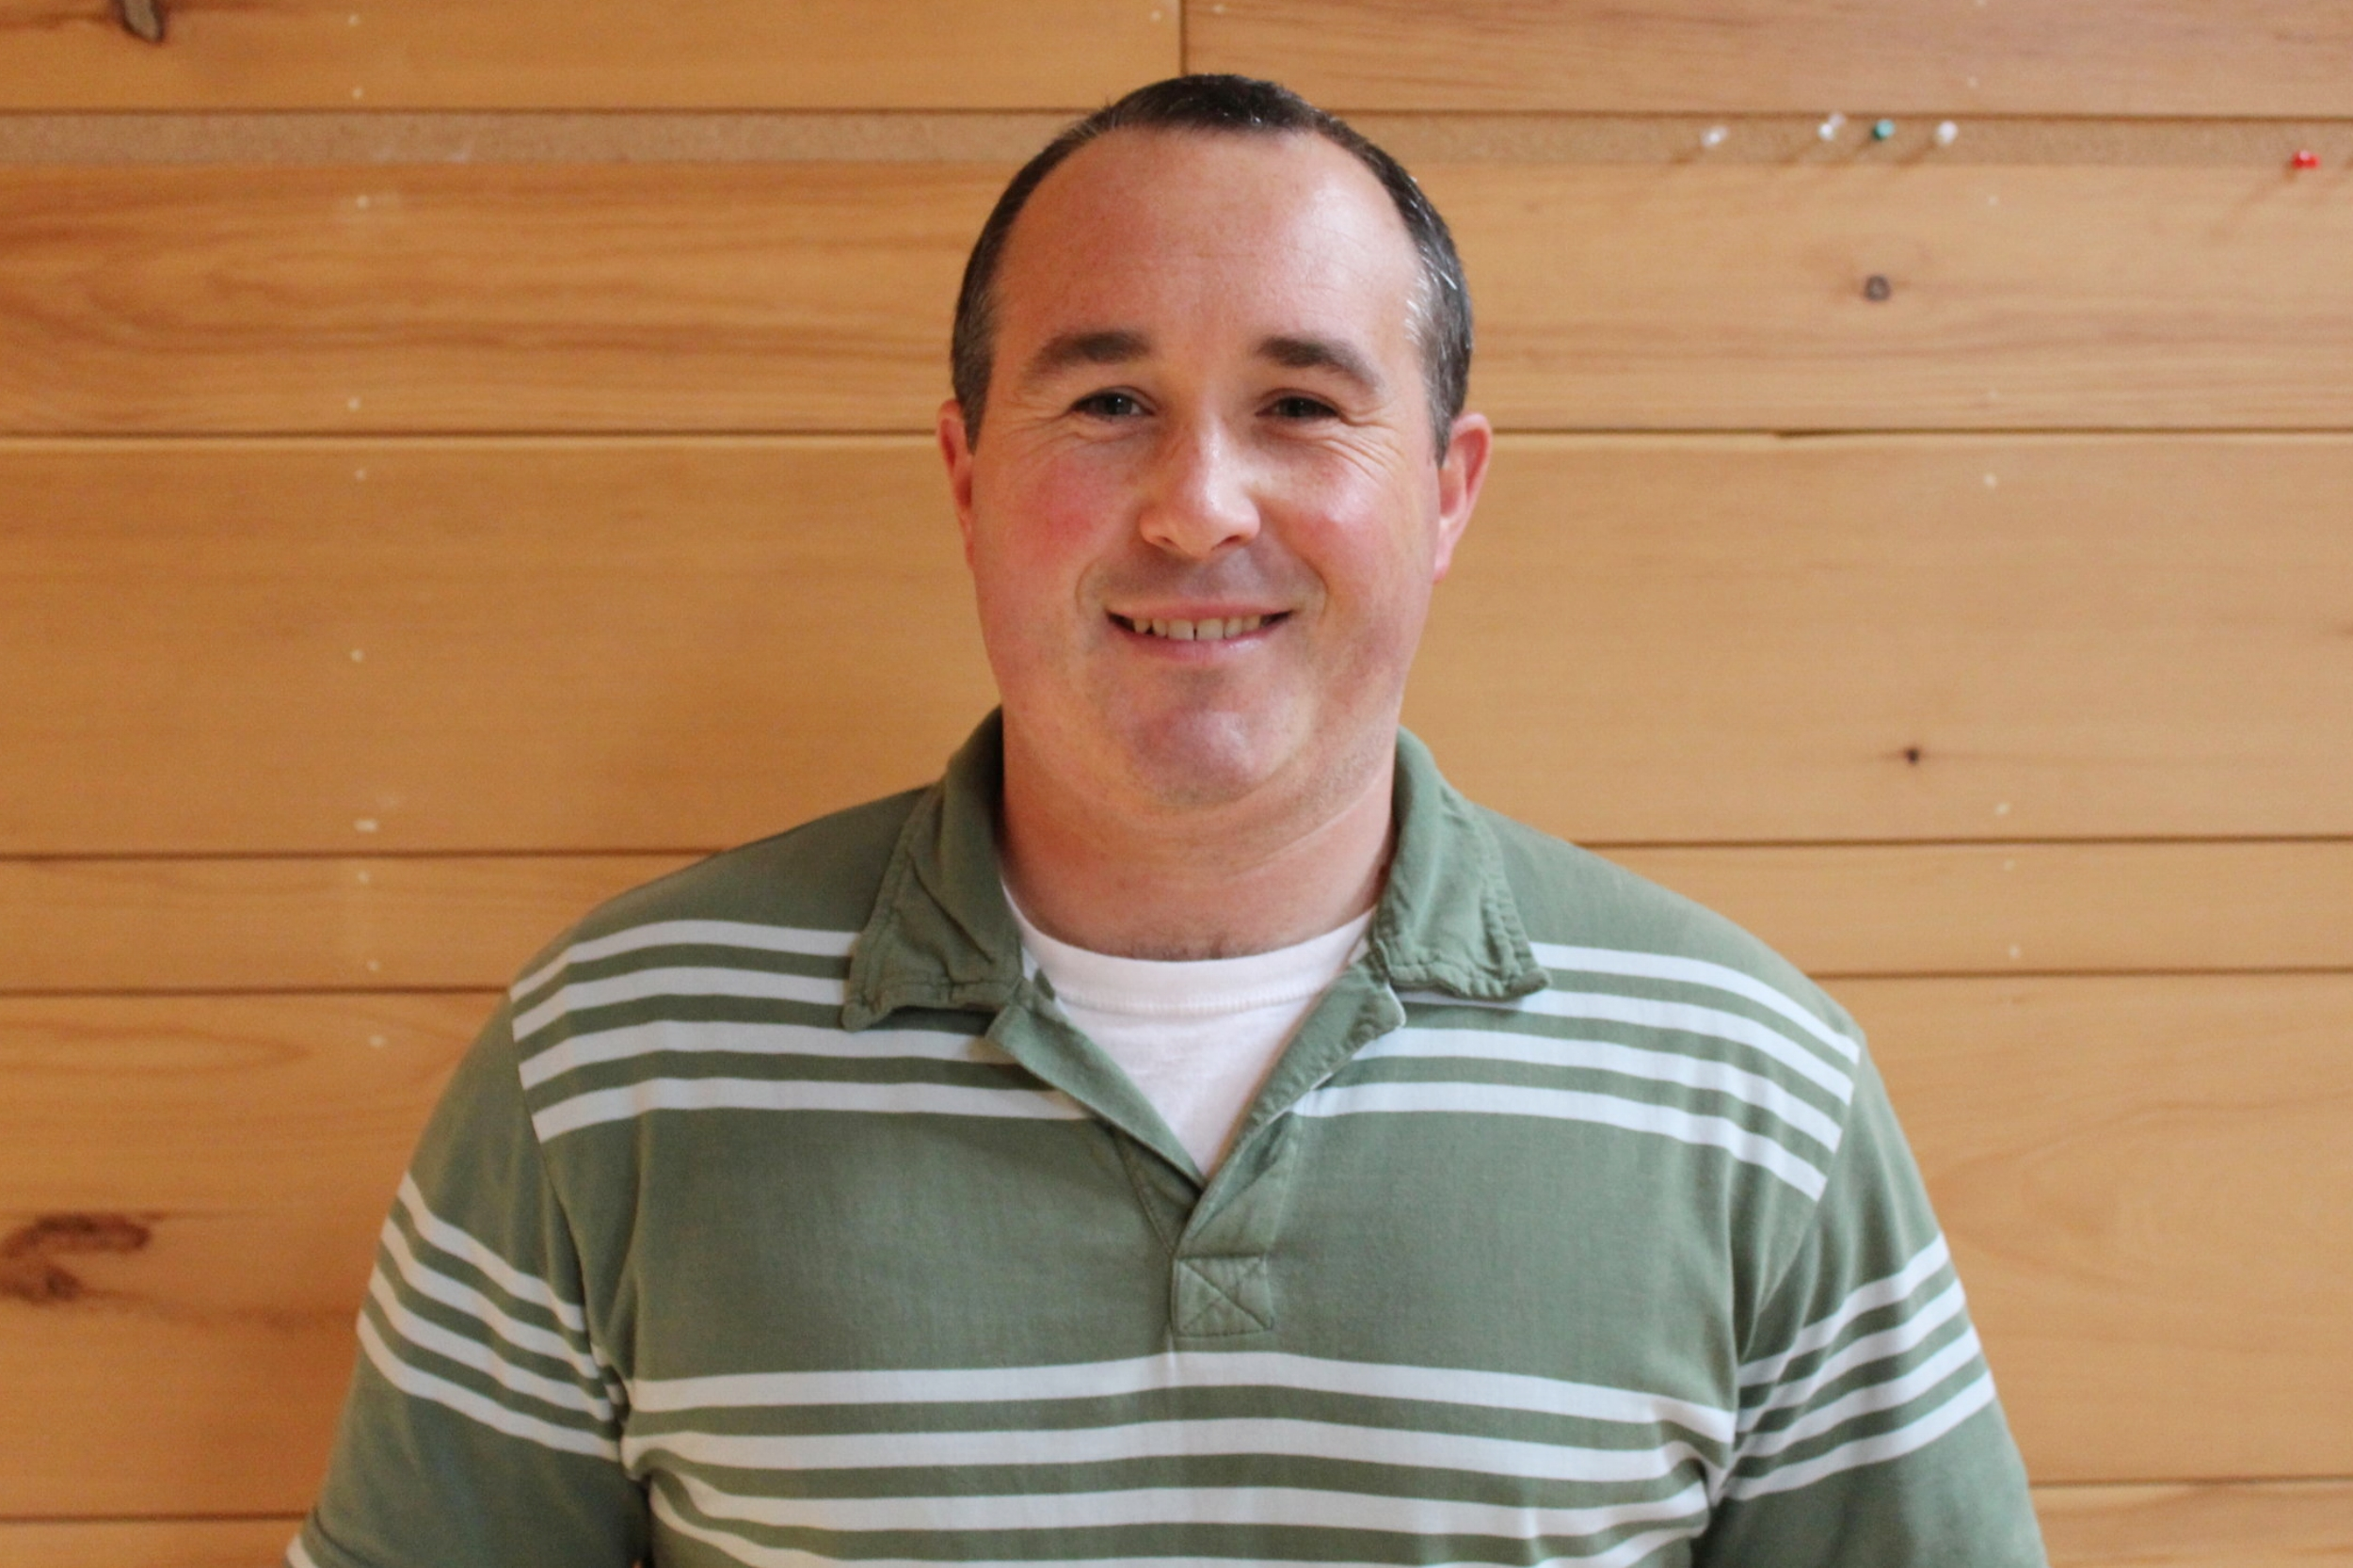 Keith Jones - Keith Jones is our Business Manager. Keith, a CPA, comes to us by way of Unity College, Baker Newman & Noyes, and North Yarmouth Academy, where he has been for the last 3 years as Senior Accountant. It's great to have someone with experience in an independent school--with audits, financial aid, board reports, parents, budgeting, and financial modeling. In addition, Keith is a Registered Maine Guide and, like a true Mainer, loves getting into the back country.finance@friendsschoolportland.org